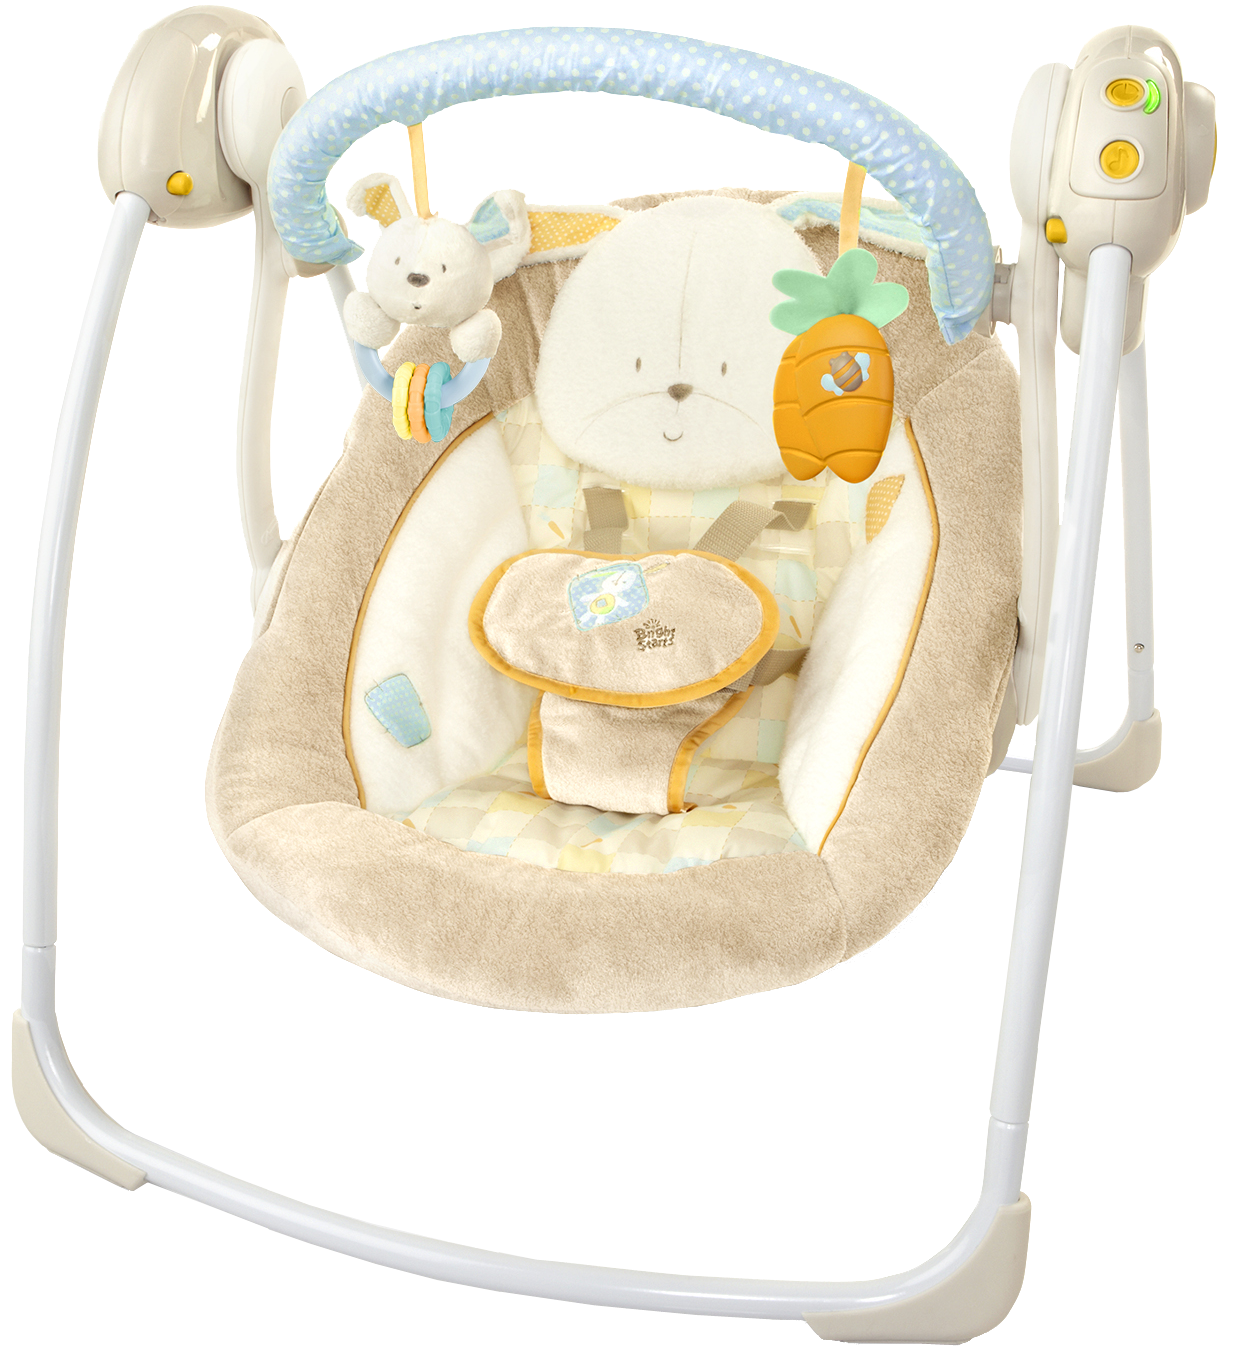 BRIGHT Starts Safari Smiles Review | Baby Swing Center